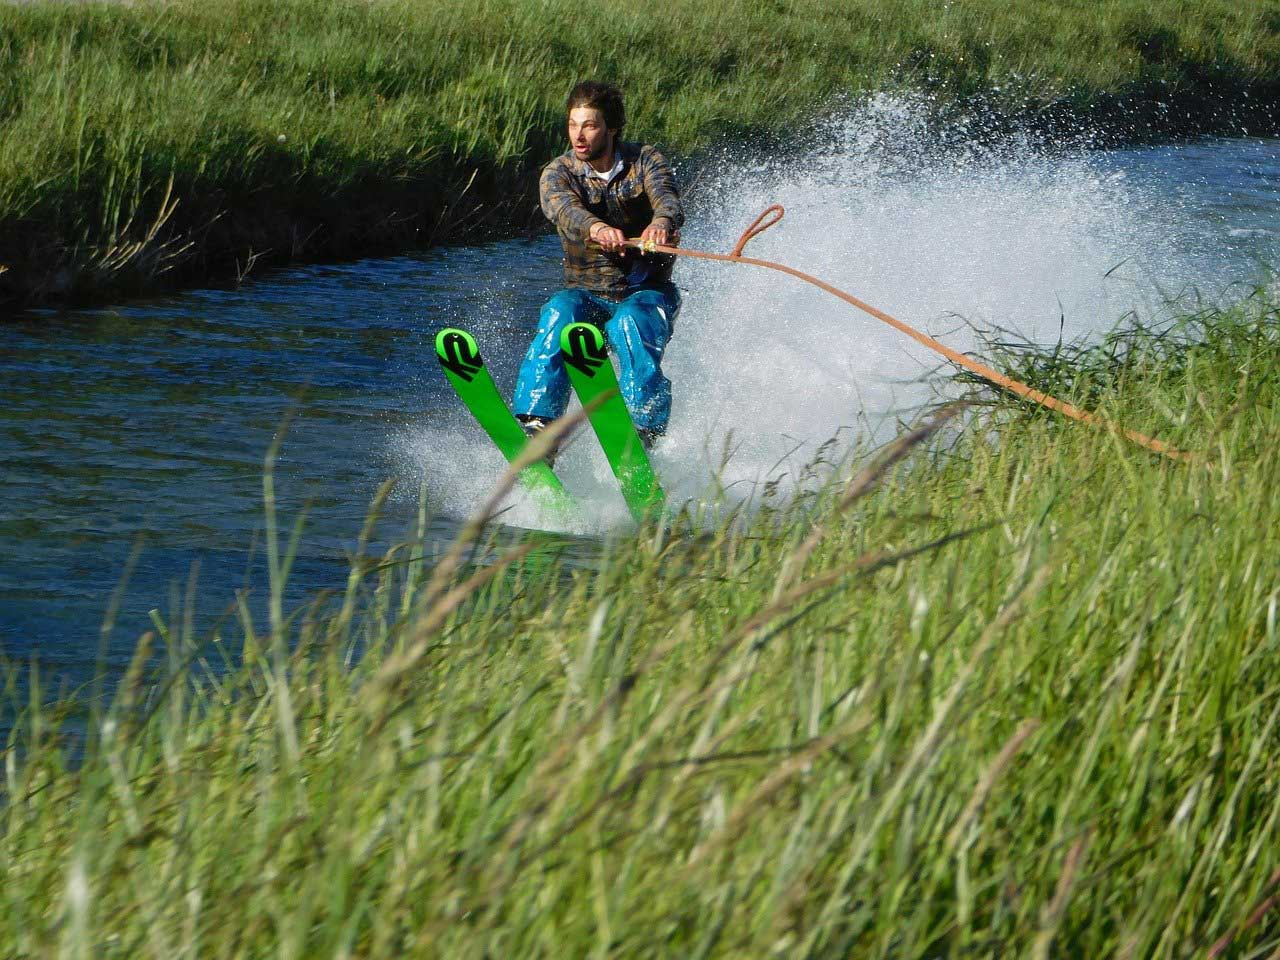 Water-skiing-grass